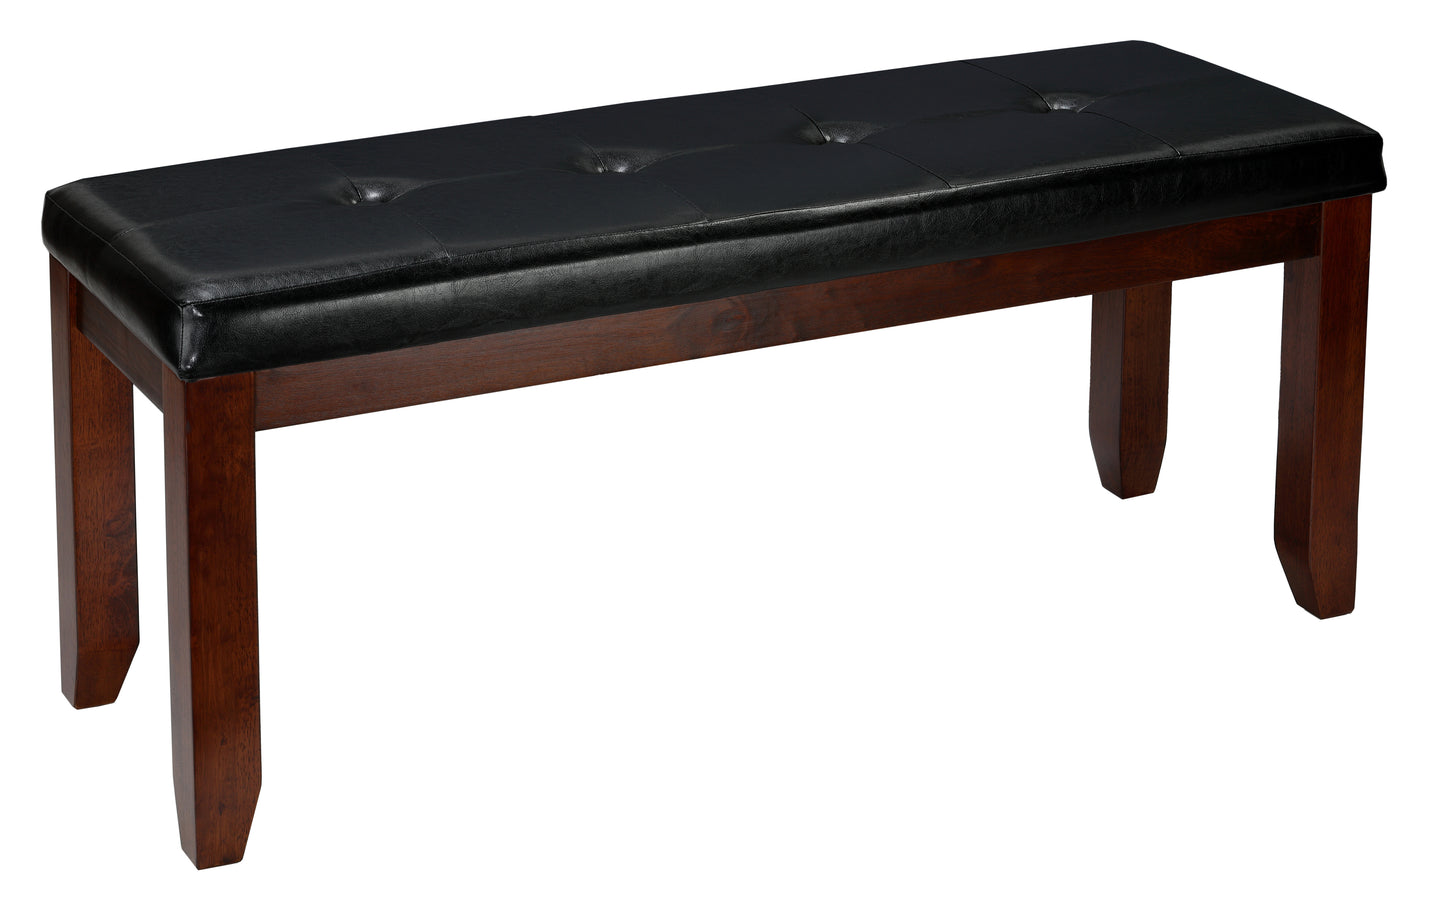 Cortesi Home Mandi Dining Bench, Solid Wood & Tufted Black Faux Leather